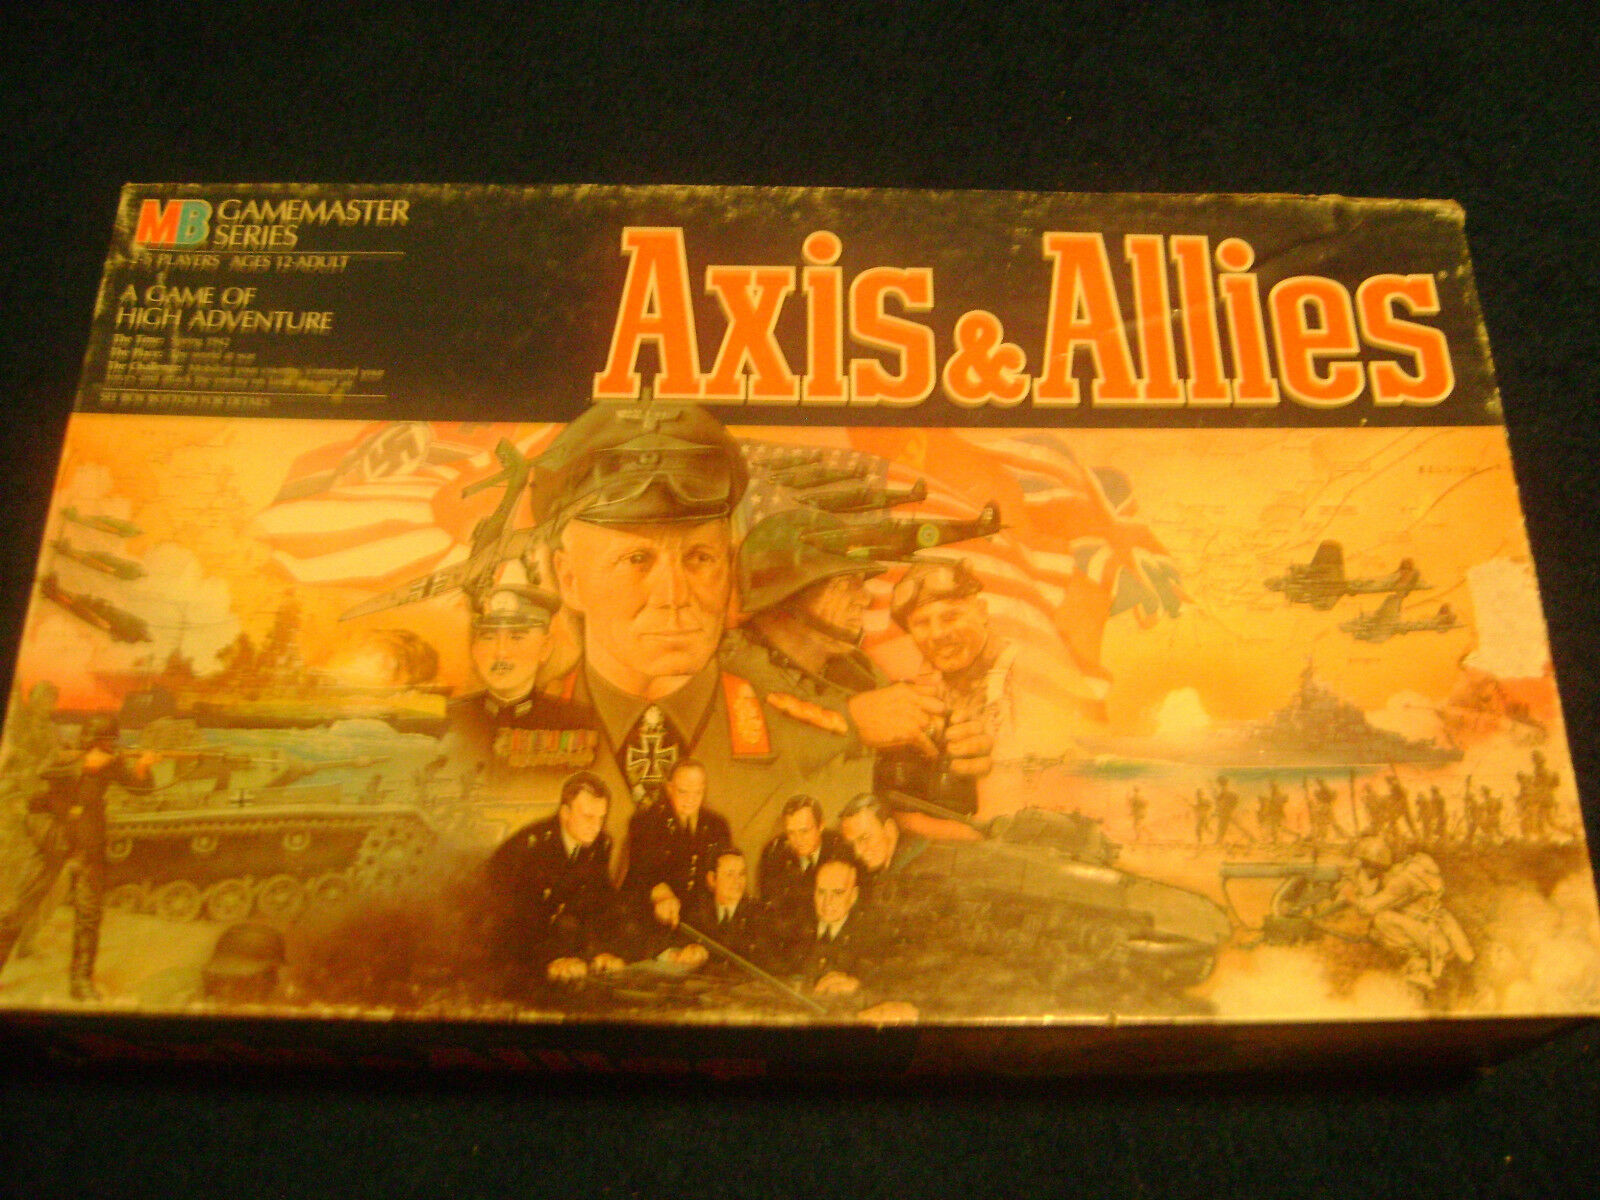 AXIS & ALLIES SPRING 1942 BOARD GAME - COMPLETE